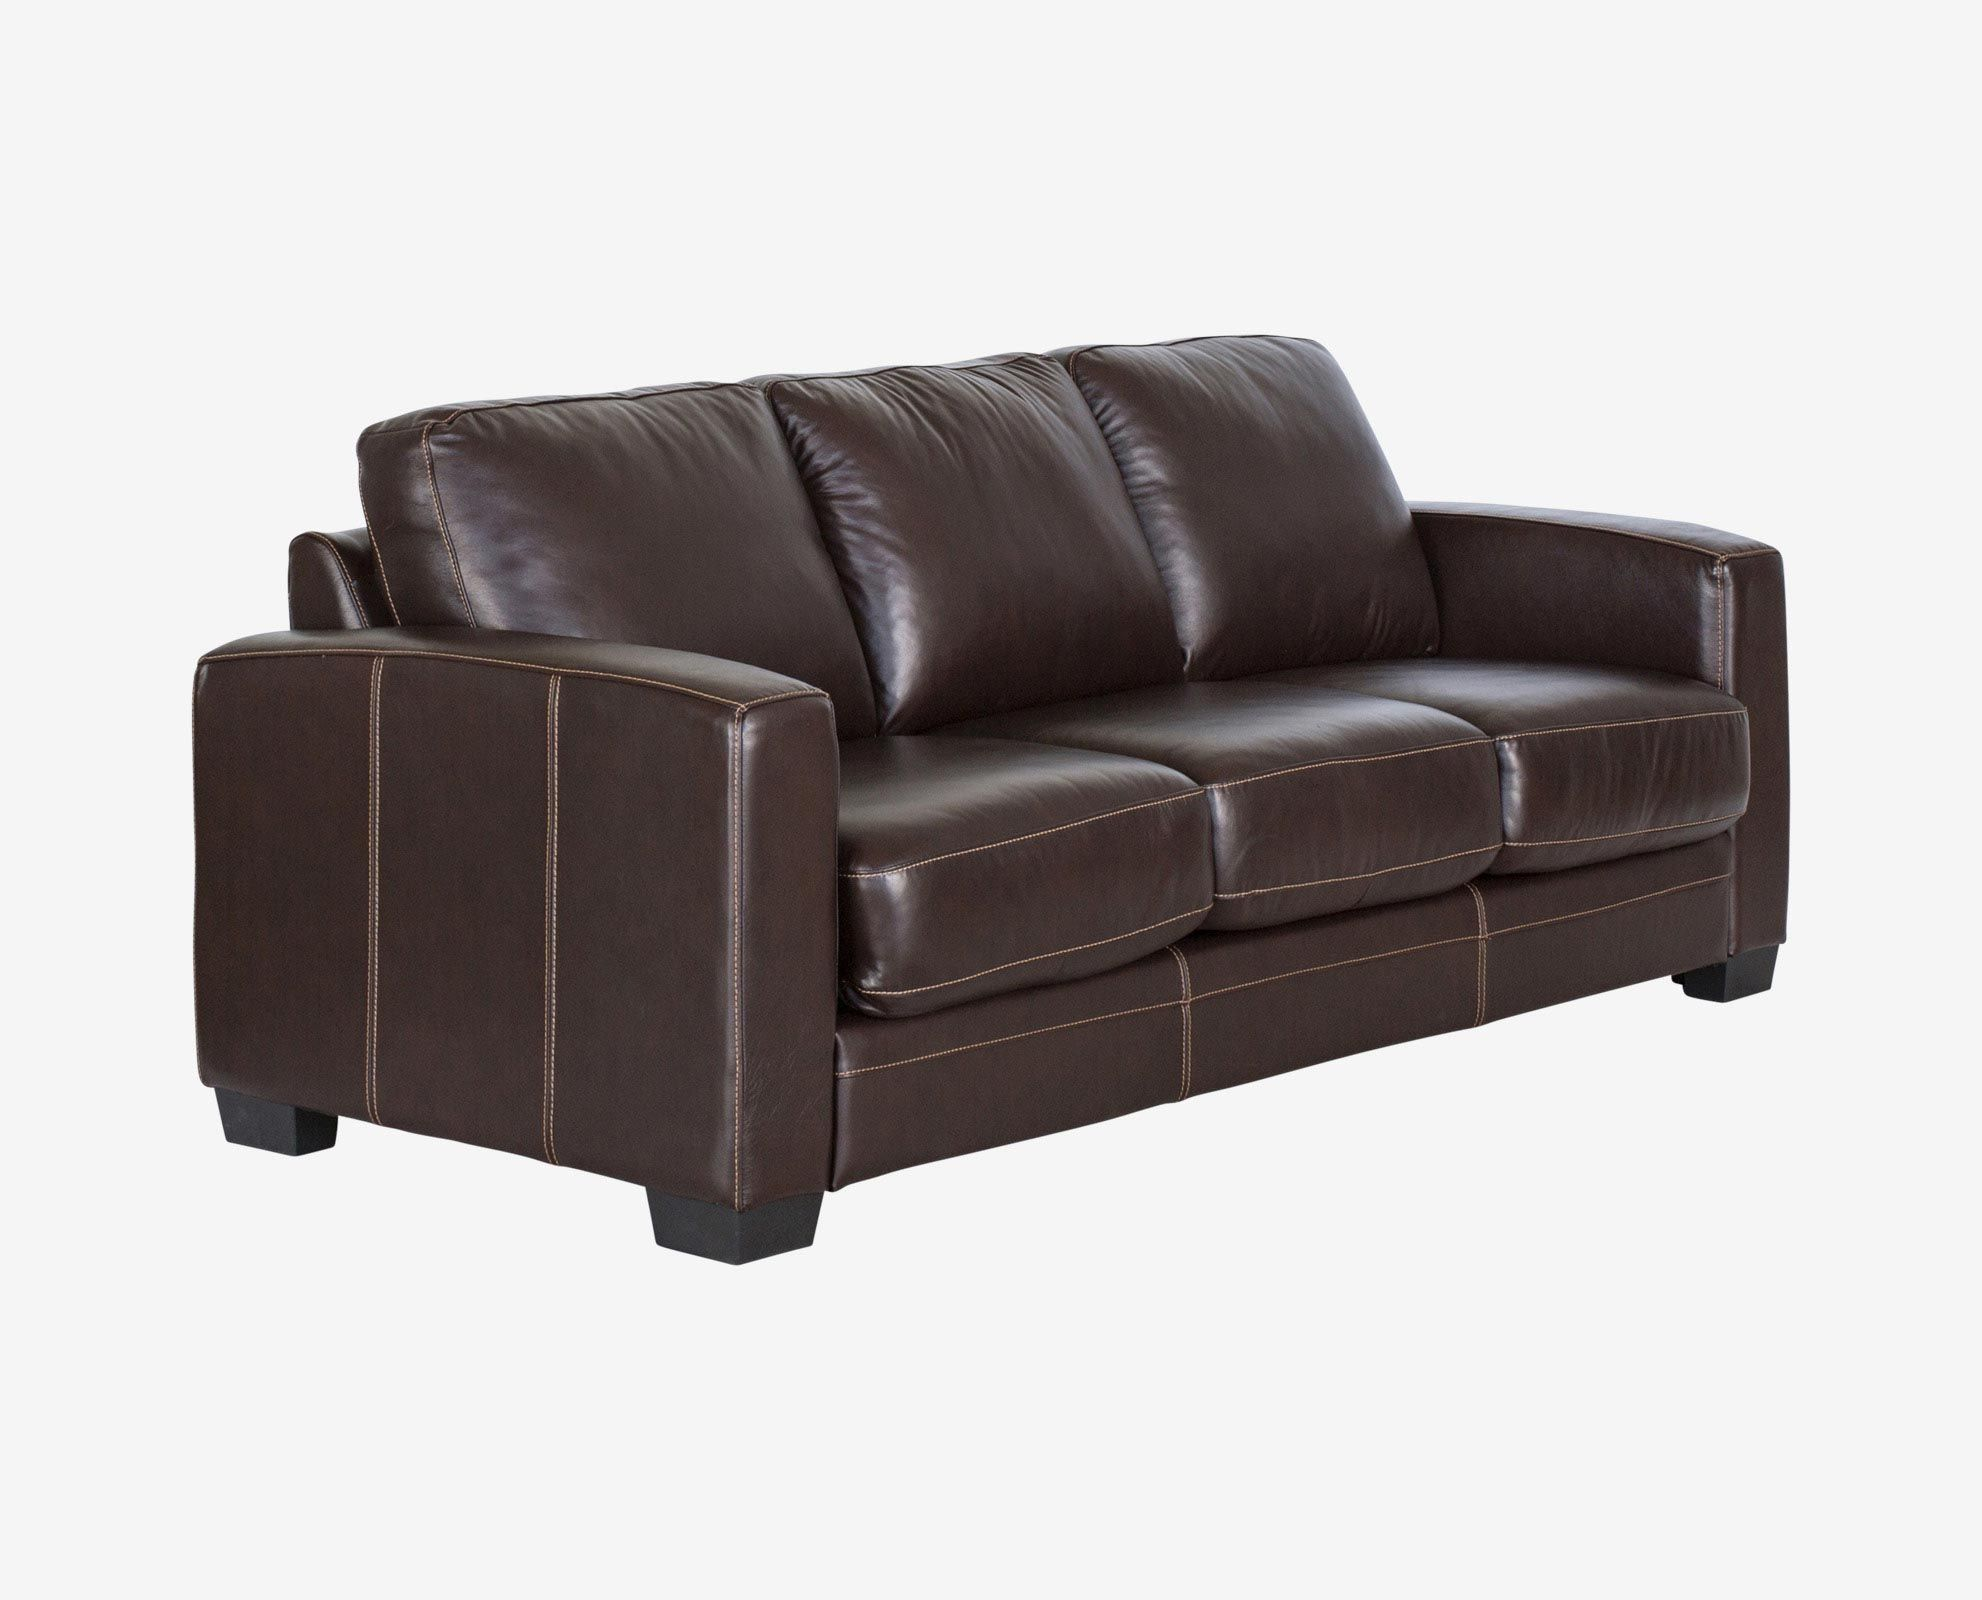 Dania Leather Sleeper Sofa Review Home Co